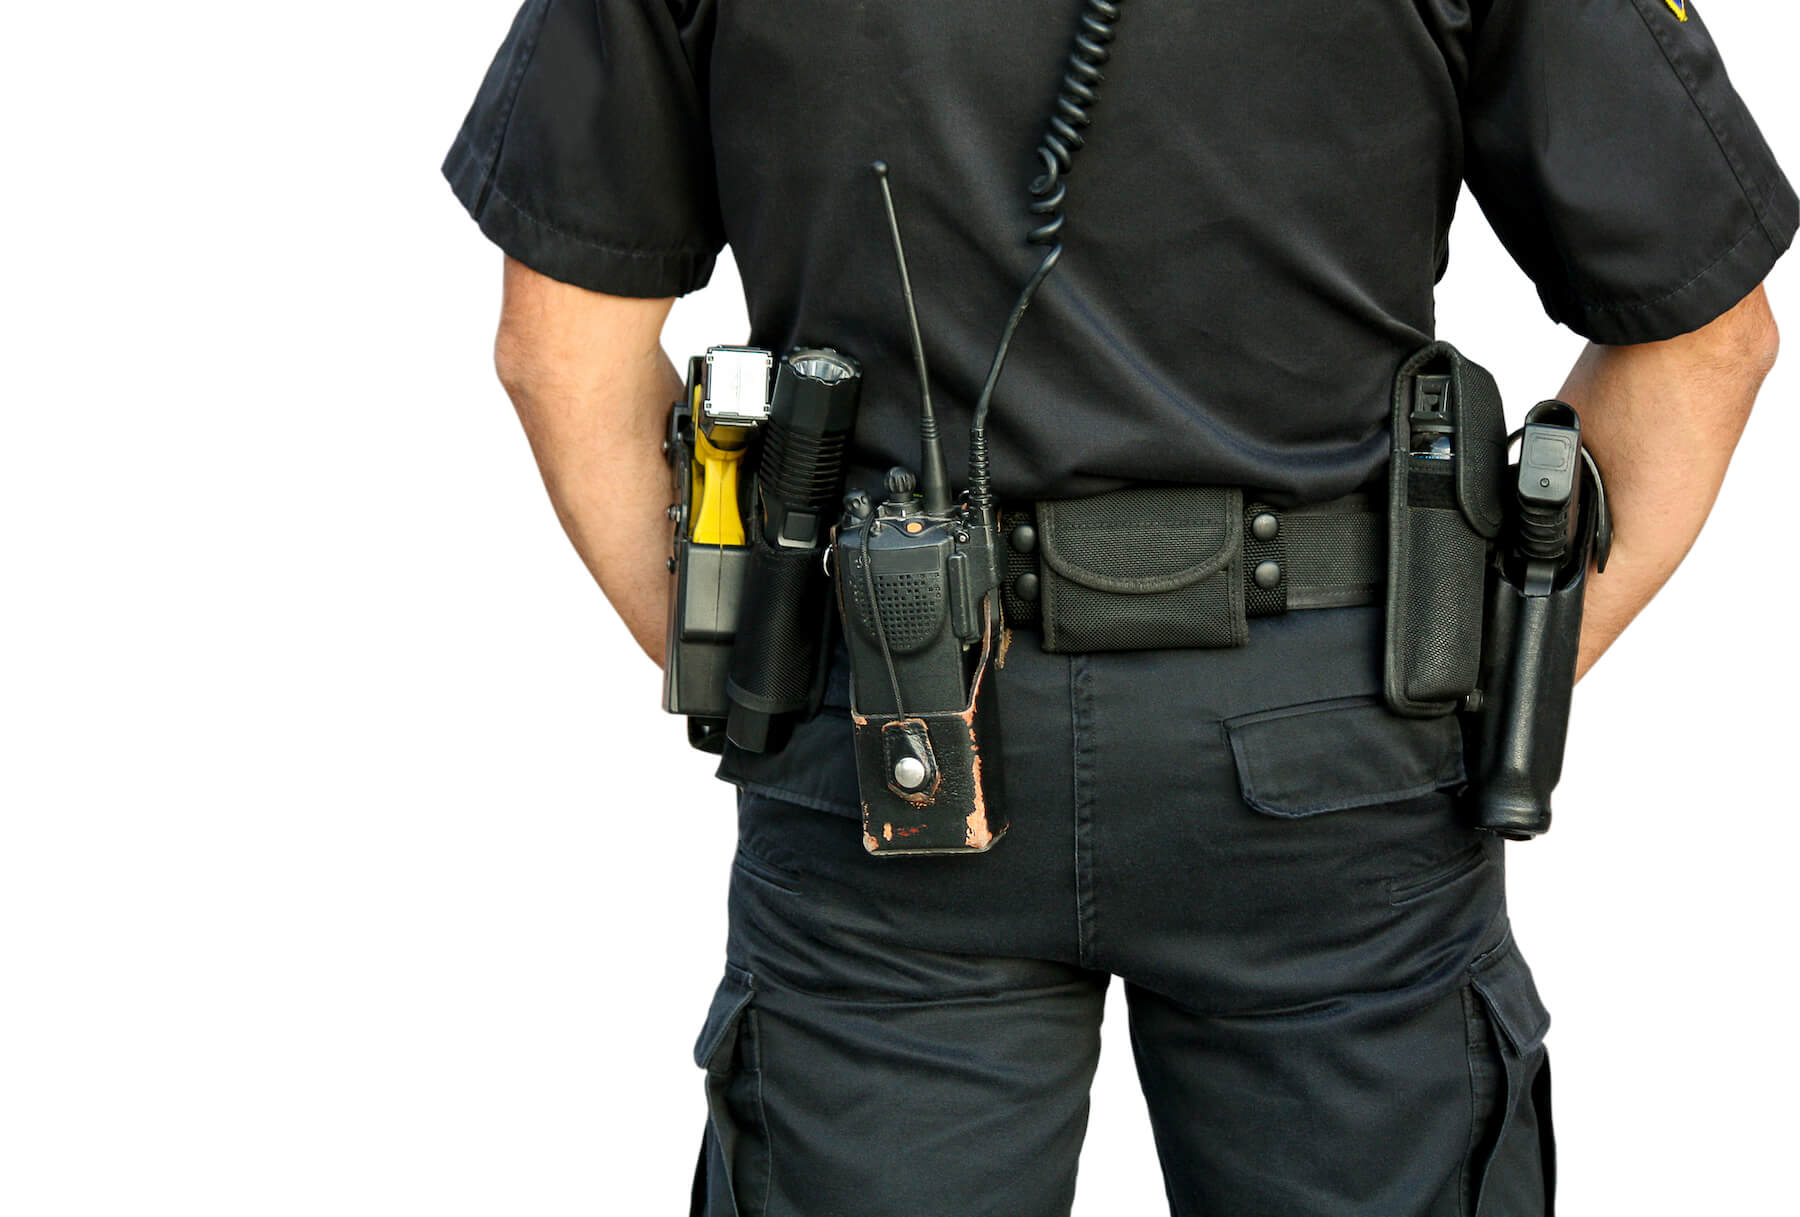 Unintended: A Theory of Taser / Weapon Confusion | Force Science Institute